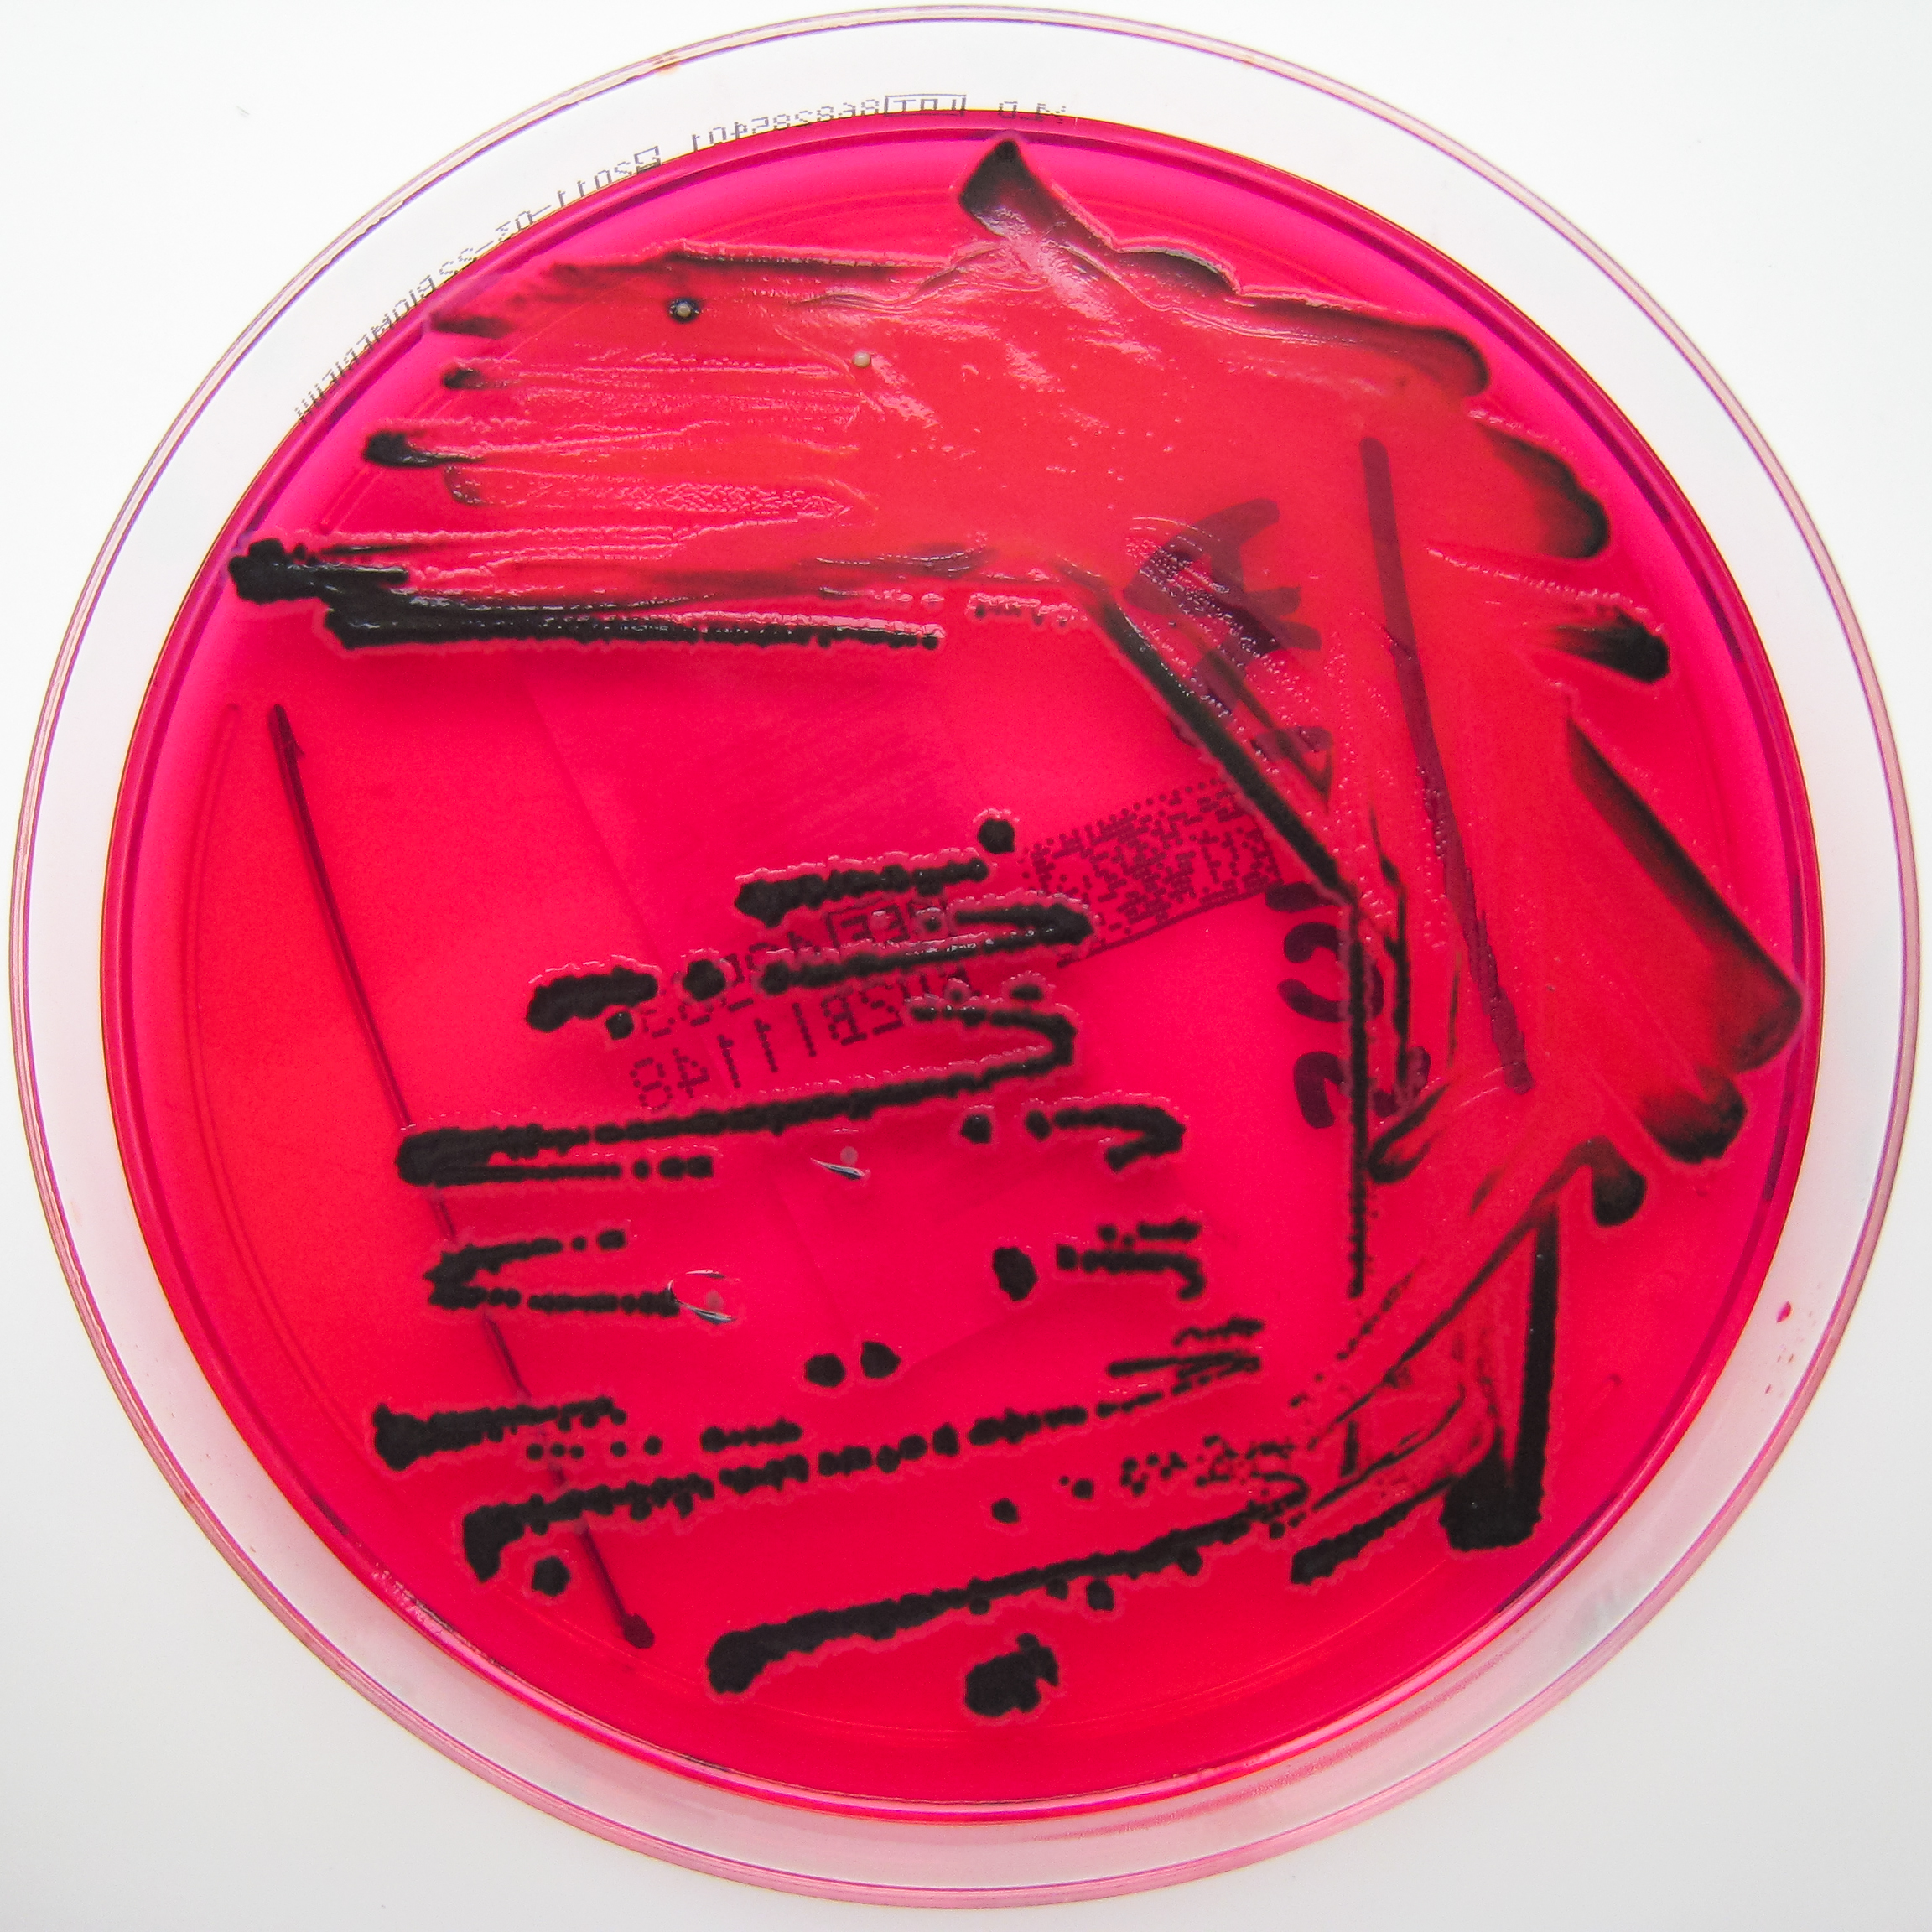 By Nathan Reading from Halesowen, UK (Salmonella species on X.L.D. agar.) [CC BY 2.0 (http://creativecommons.org/licenses/by/2.0)], via Wikimedia Commons